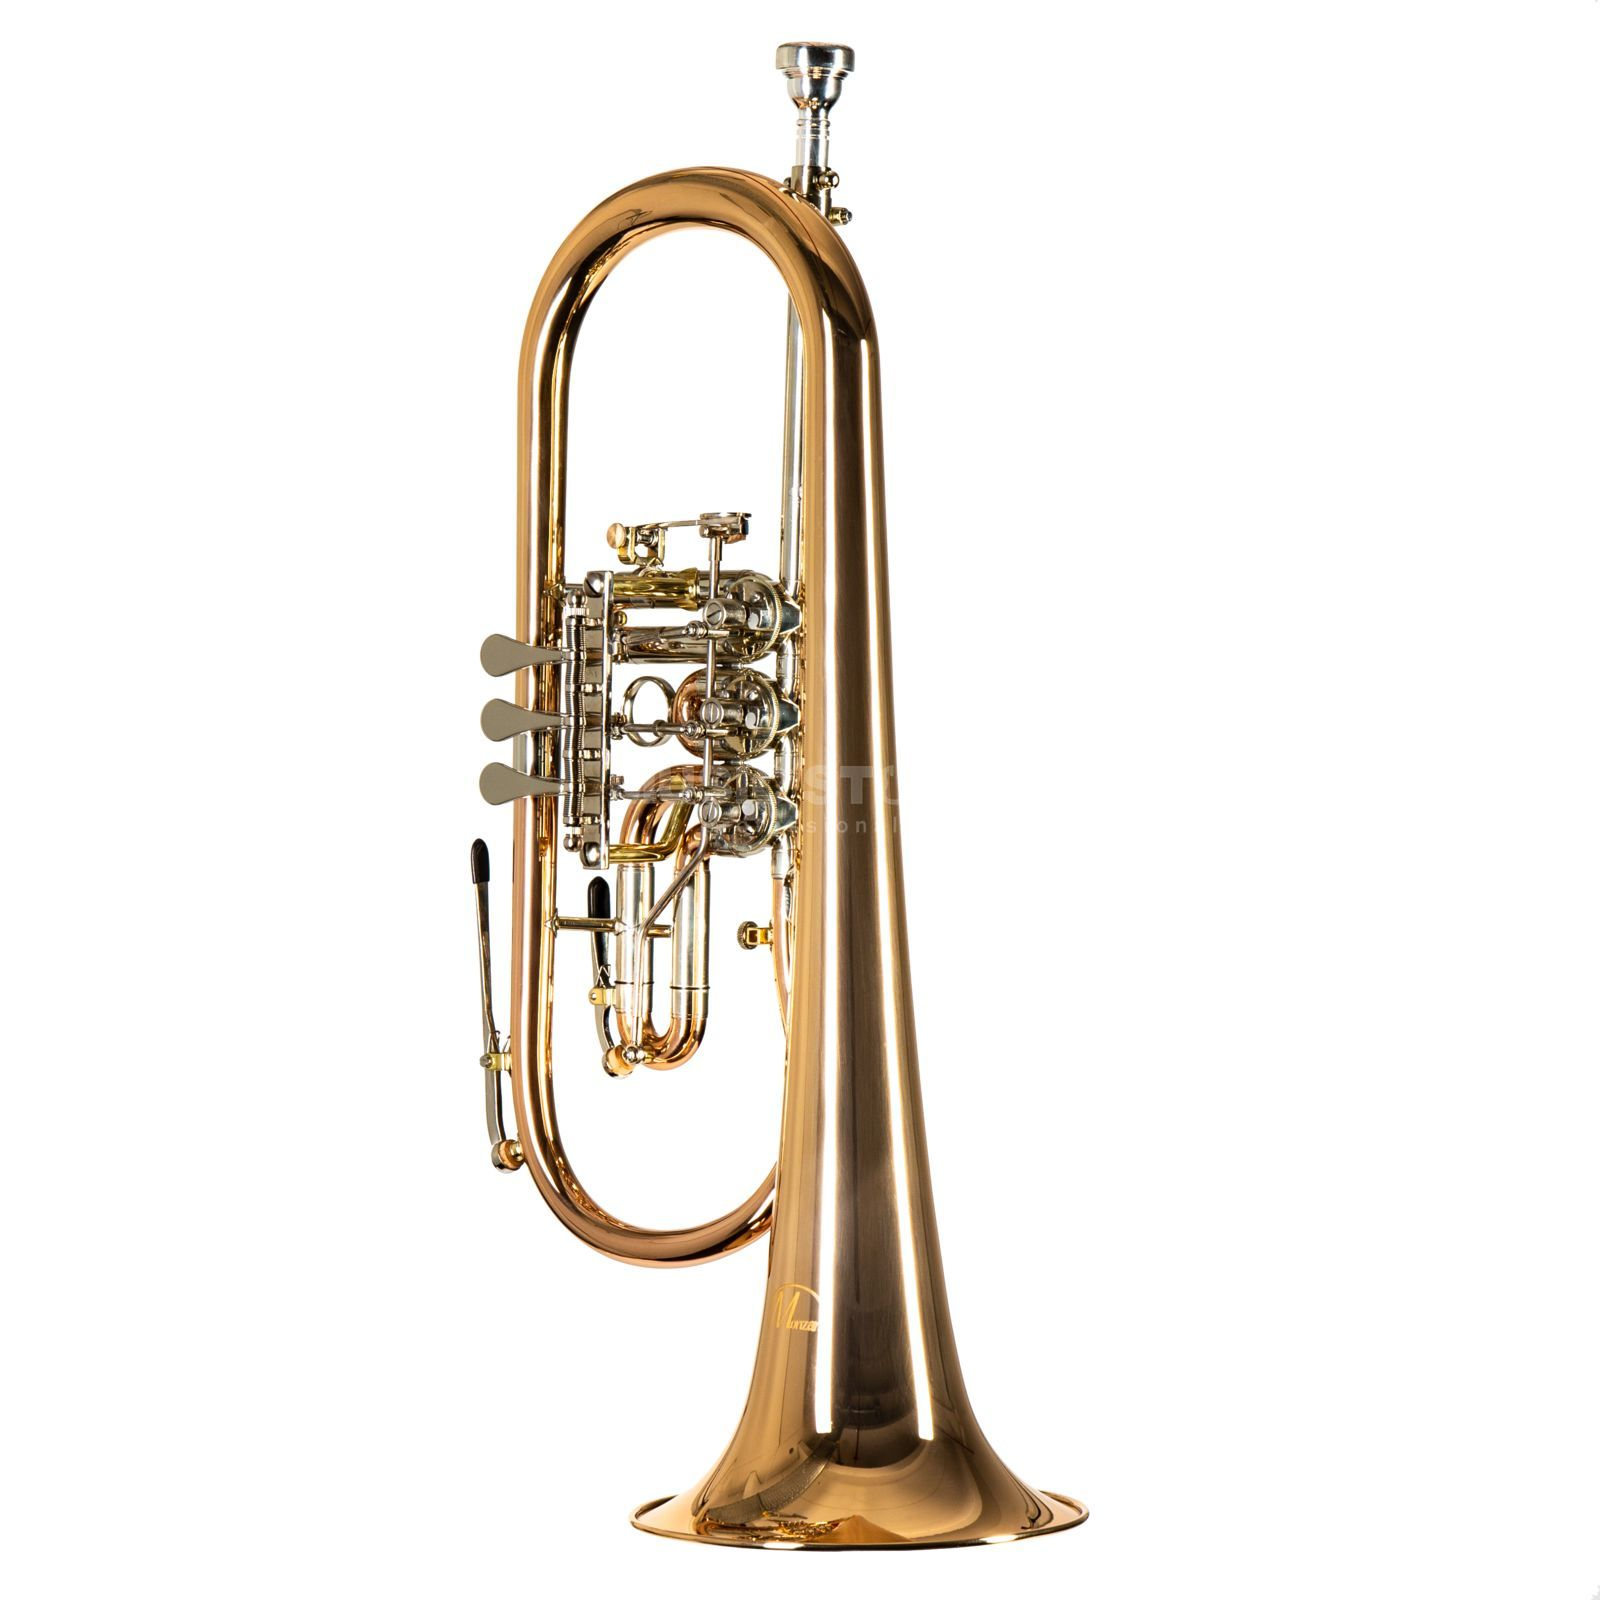 Monzani MZFH-1050L Bb-Flugel Horn Yellow Brass Изображение товара